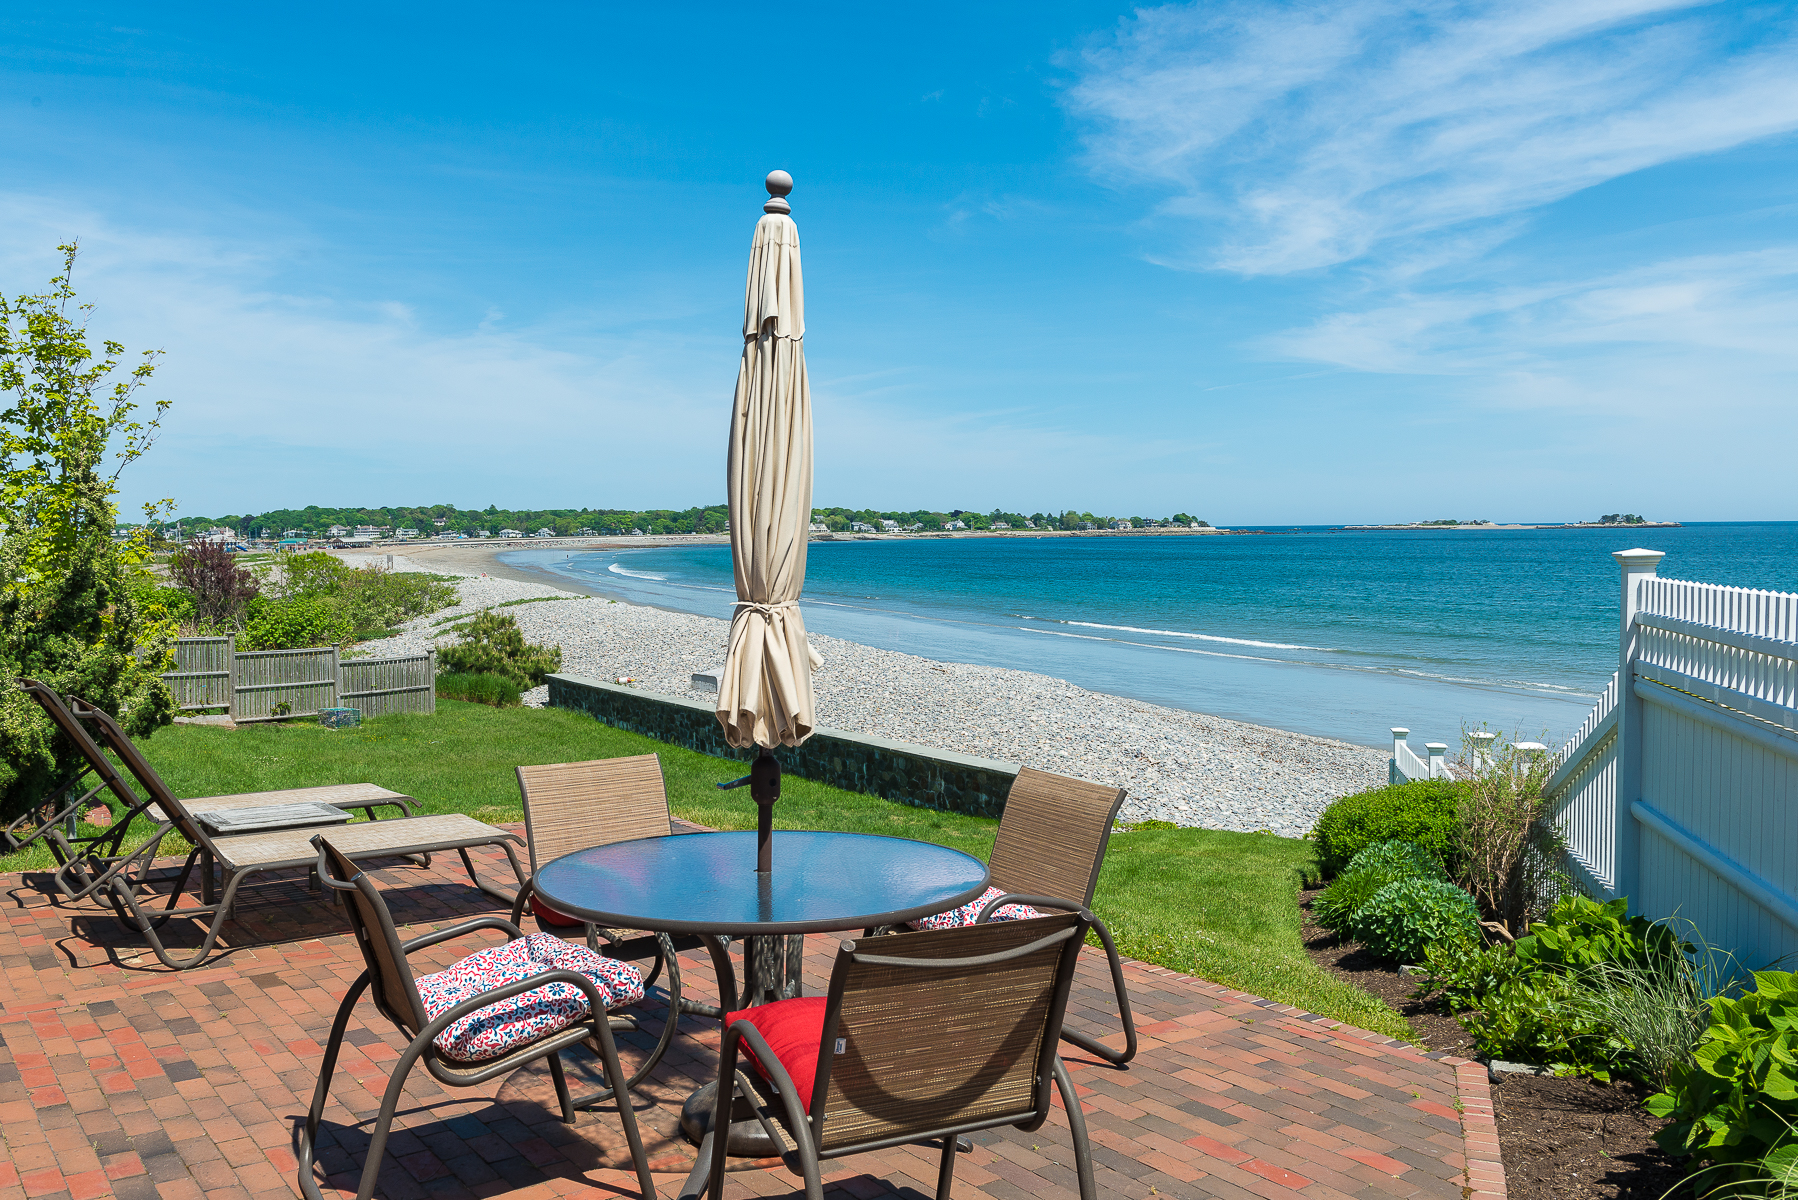 Casa Unifamiliar por un Venta en Perfect Marblehead Beach House 46 Gallison Avenue Marblehead, Massachusetts, 01945 Estados Unidos